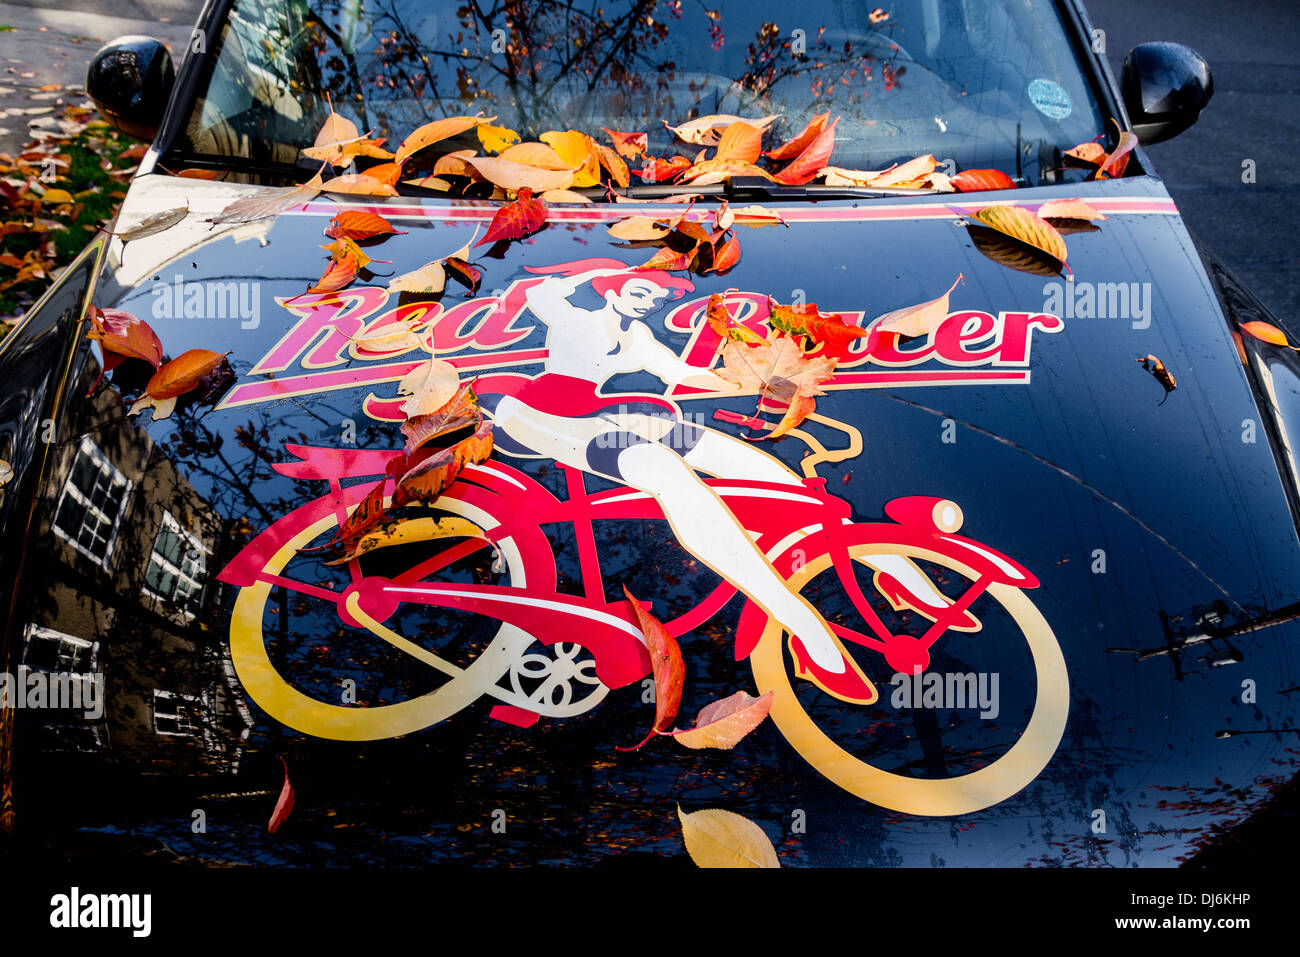 Leaves on Red Racer Beer vehicle. - Stock Image